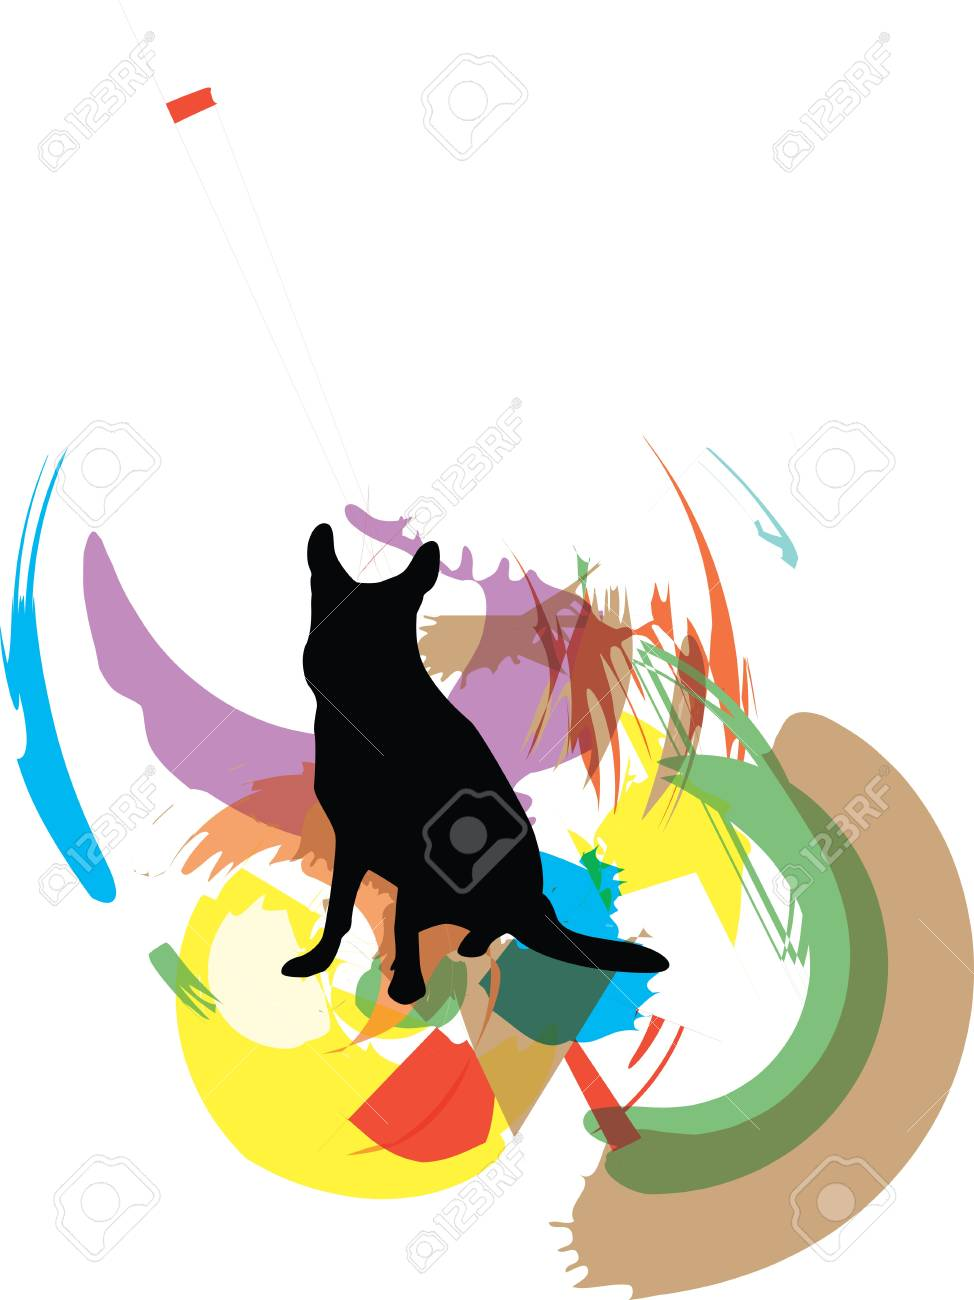 Dog, vector illustration Stock Vector - 10892542